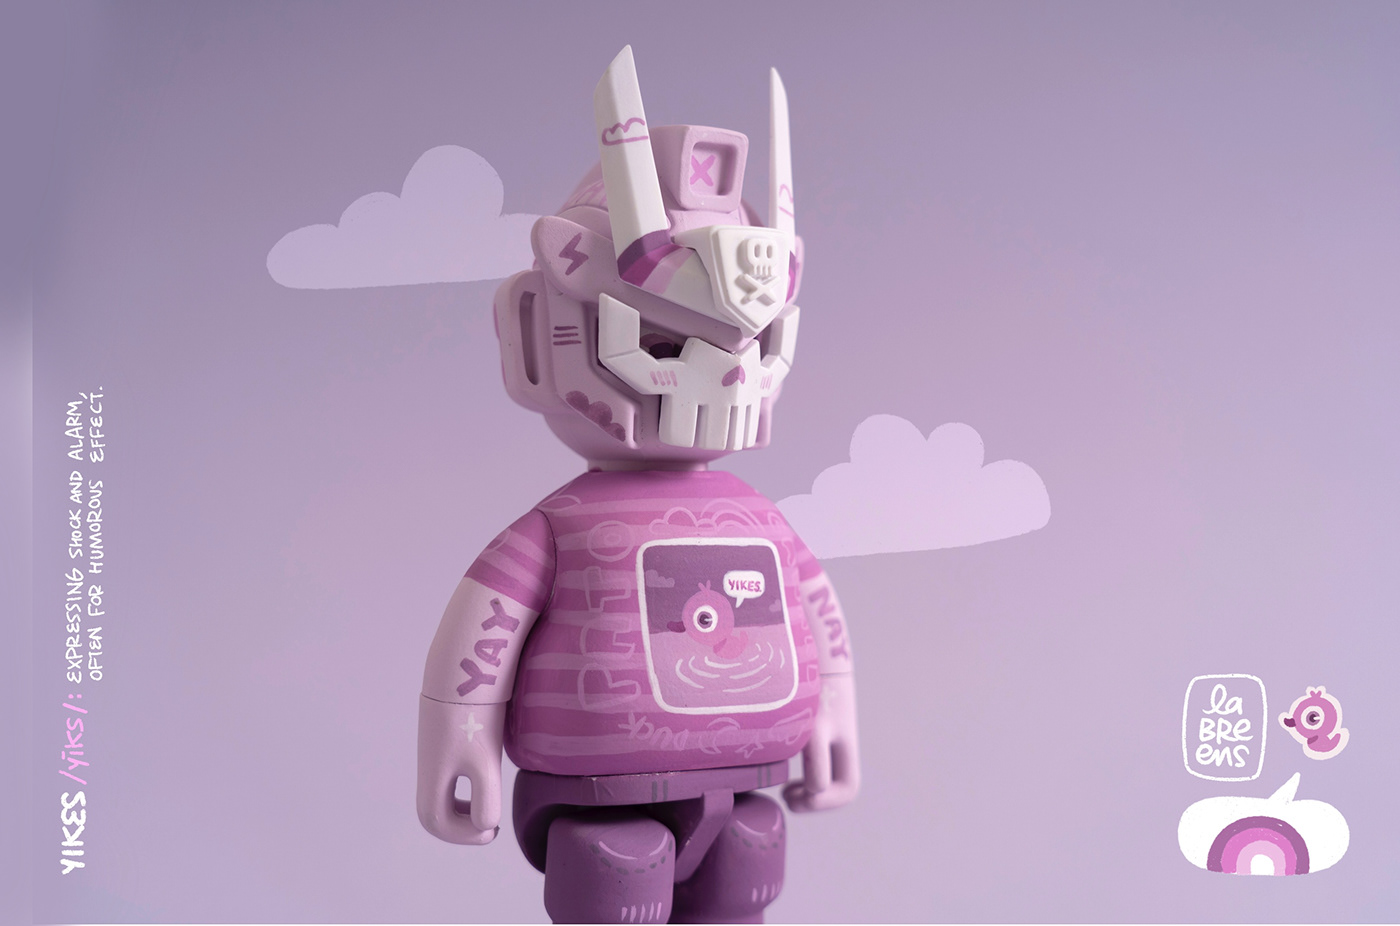 arttoy characterdesign toy design  toycollector toymaker